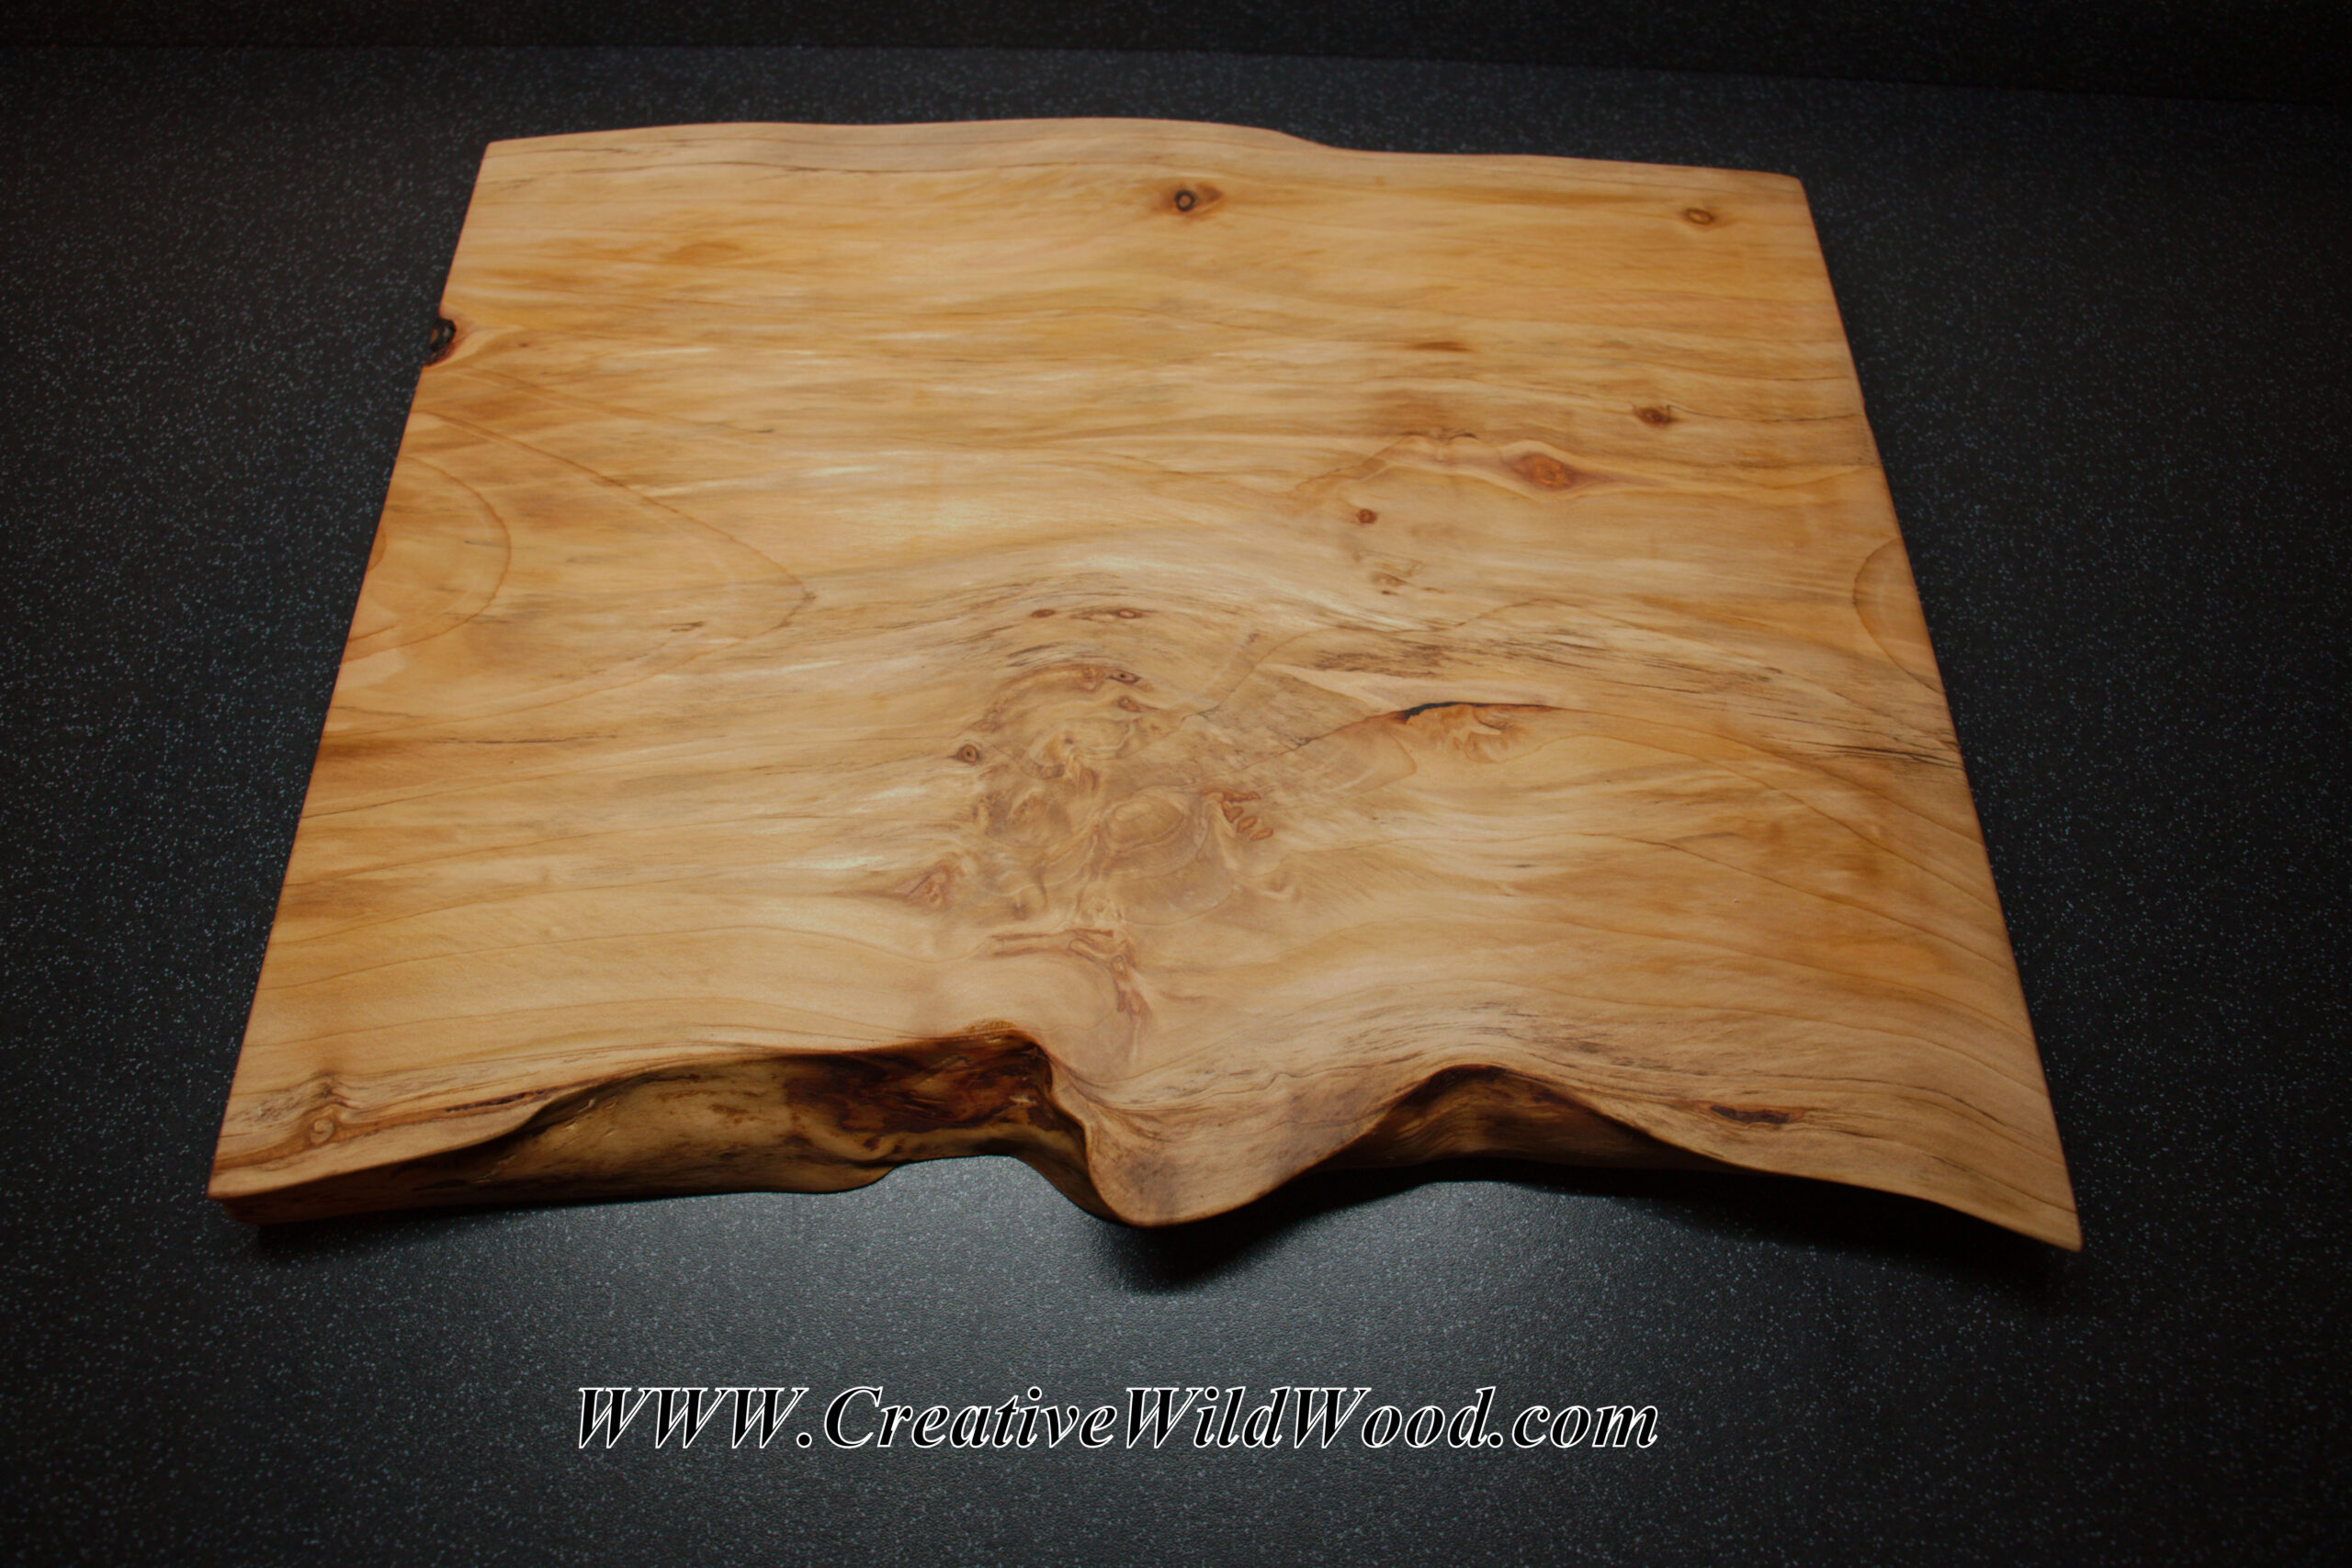 Cider of Lebanon Chopping Board